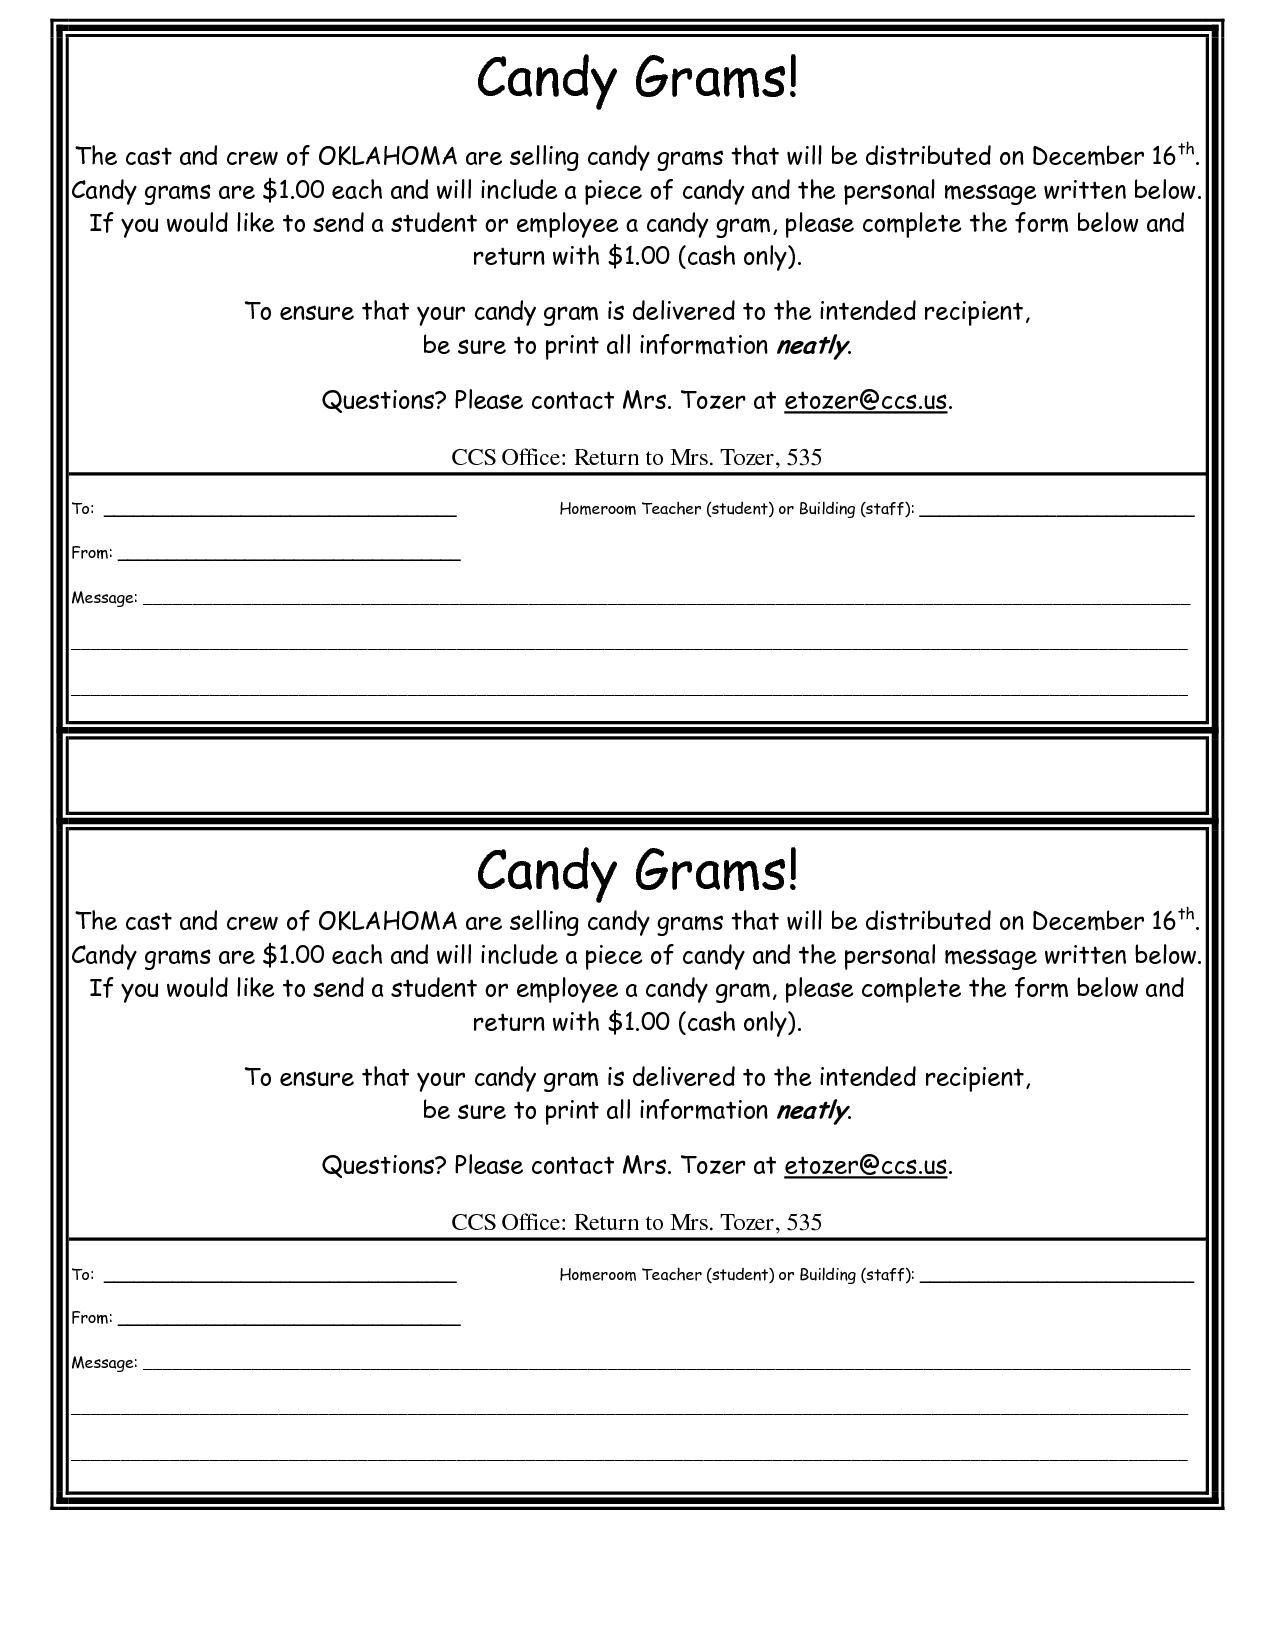 Best Images of Printable Candy Cane Gram Templates